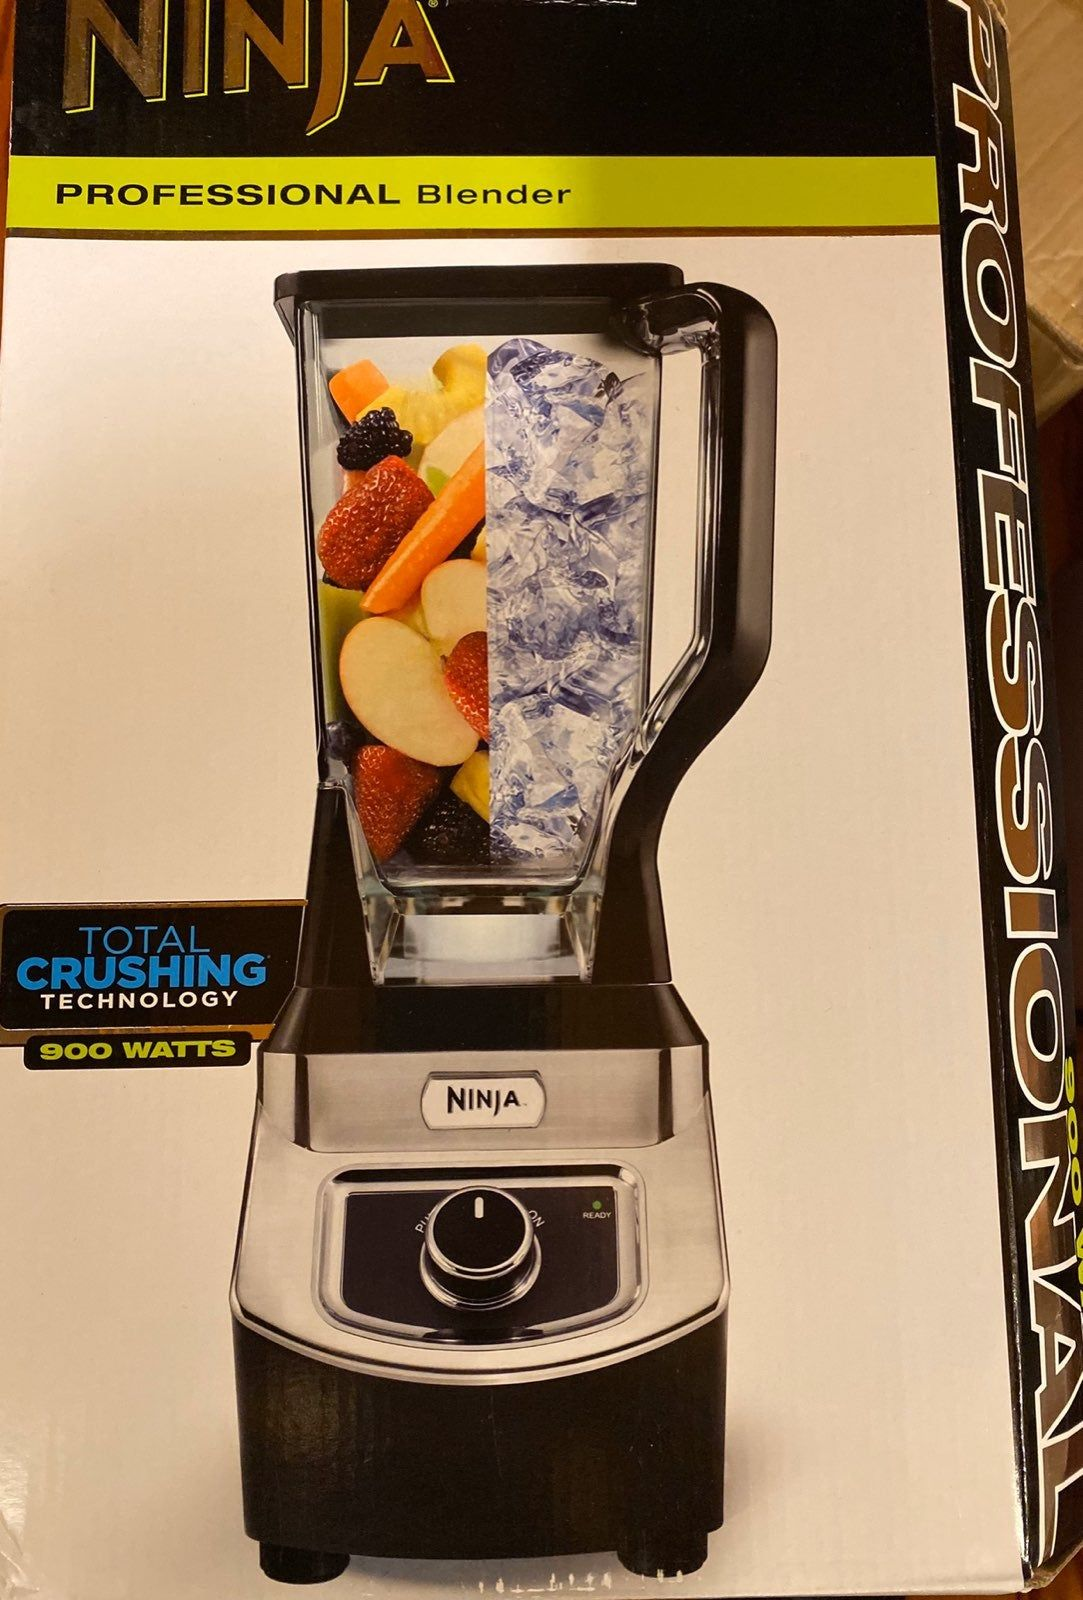 72oz Countertop Blender 1000 Watt Base And Total Crushing